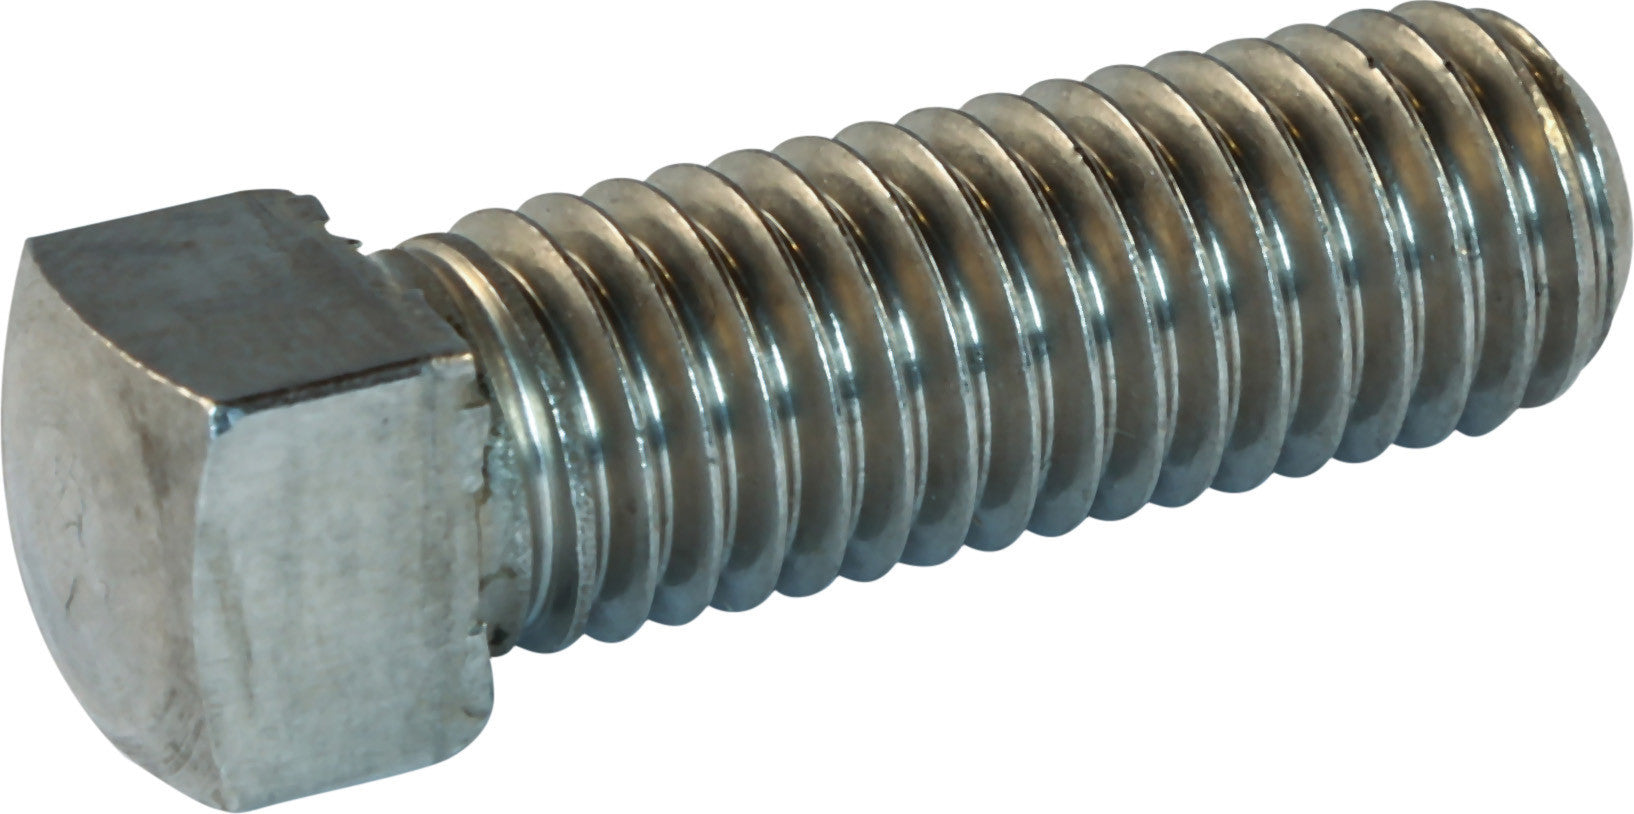 5//16-18 x 2 1//2 FT Coarse Thread Square Head Set Screw Cup Point Low Carbon Steel Case Hardened Plain Finish Pk 25